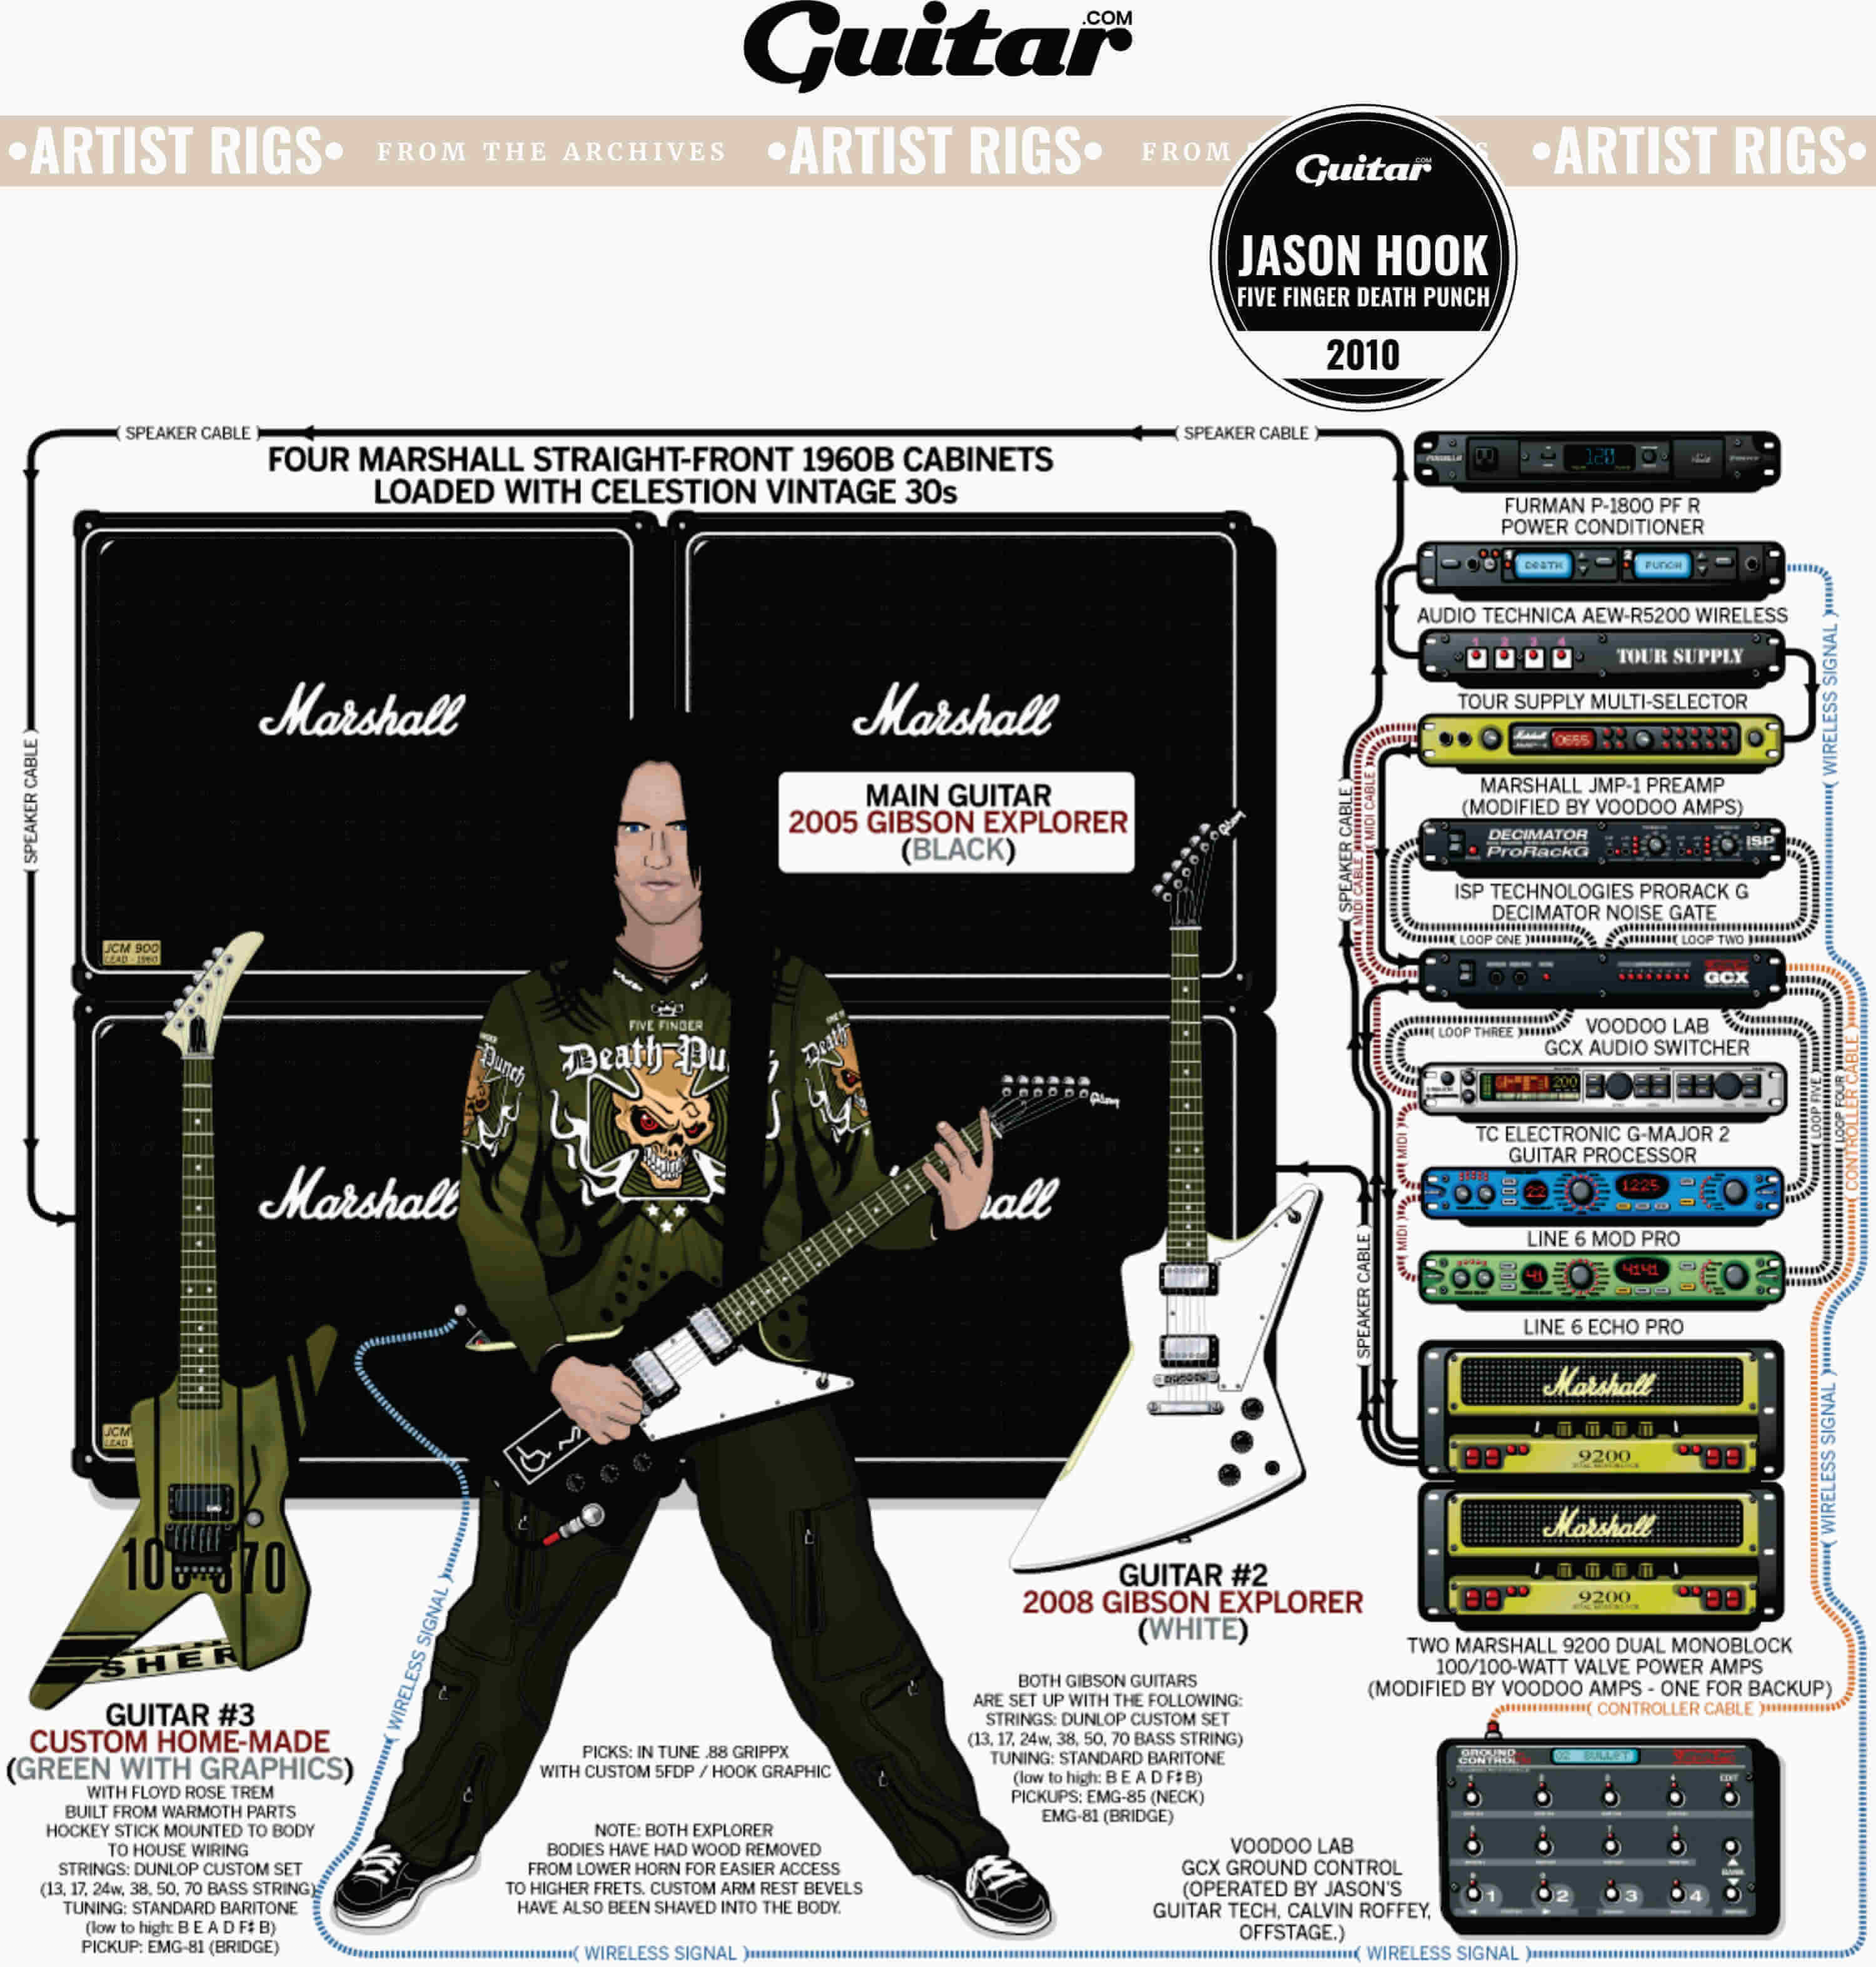 Rig Diagram: Jason Hook, Five Finger Death Punch (2010)